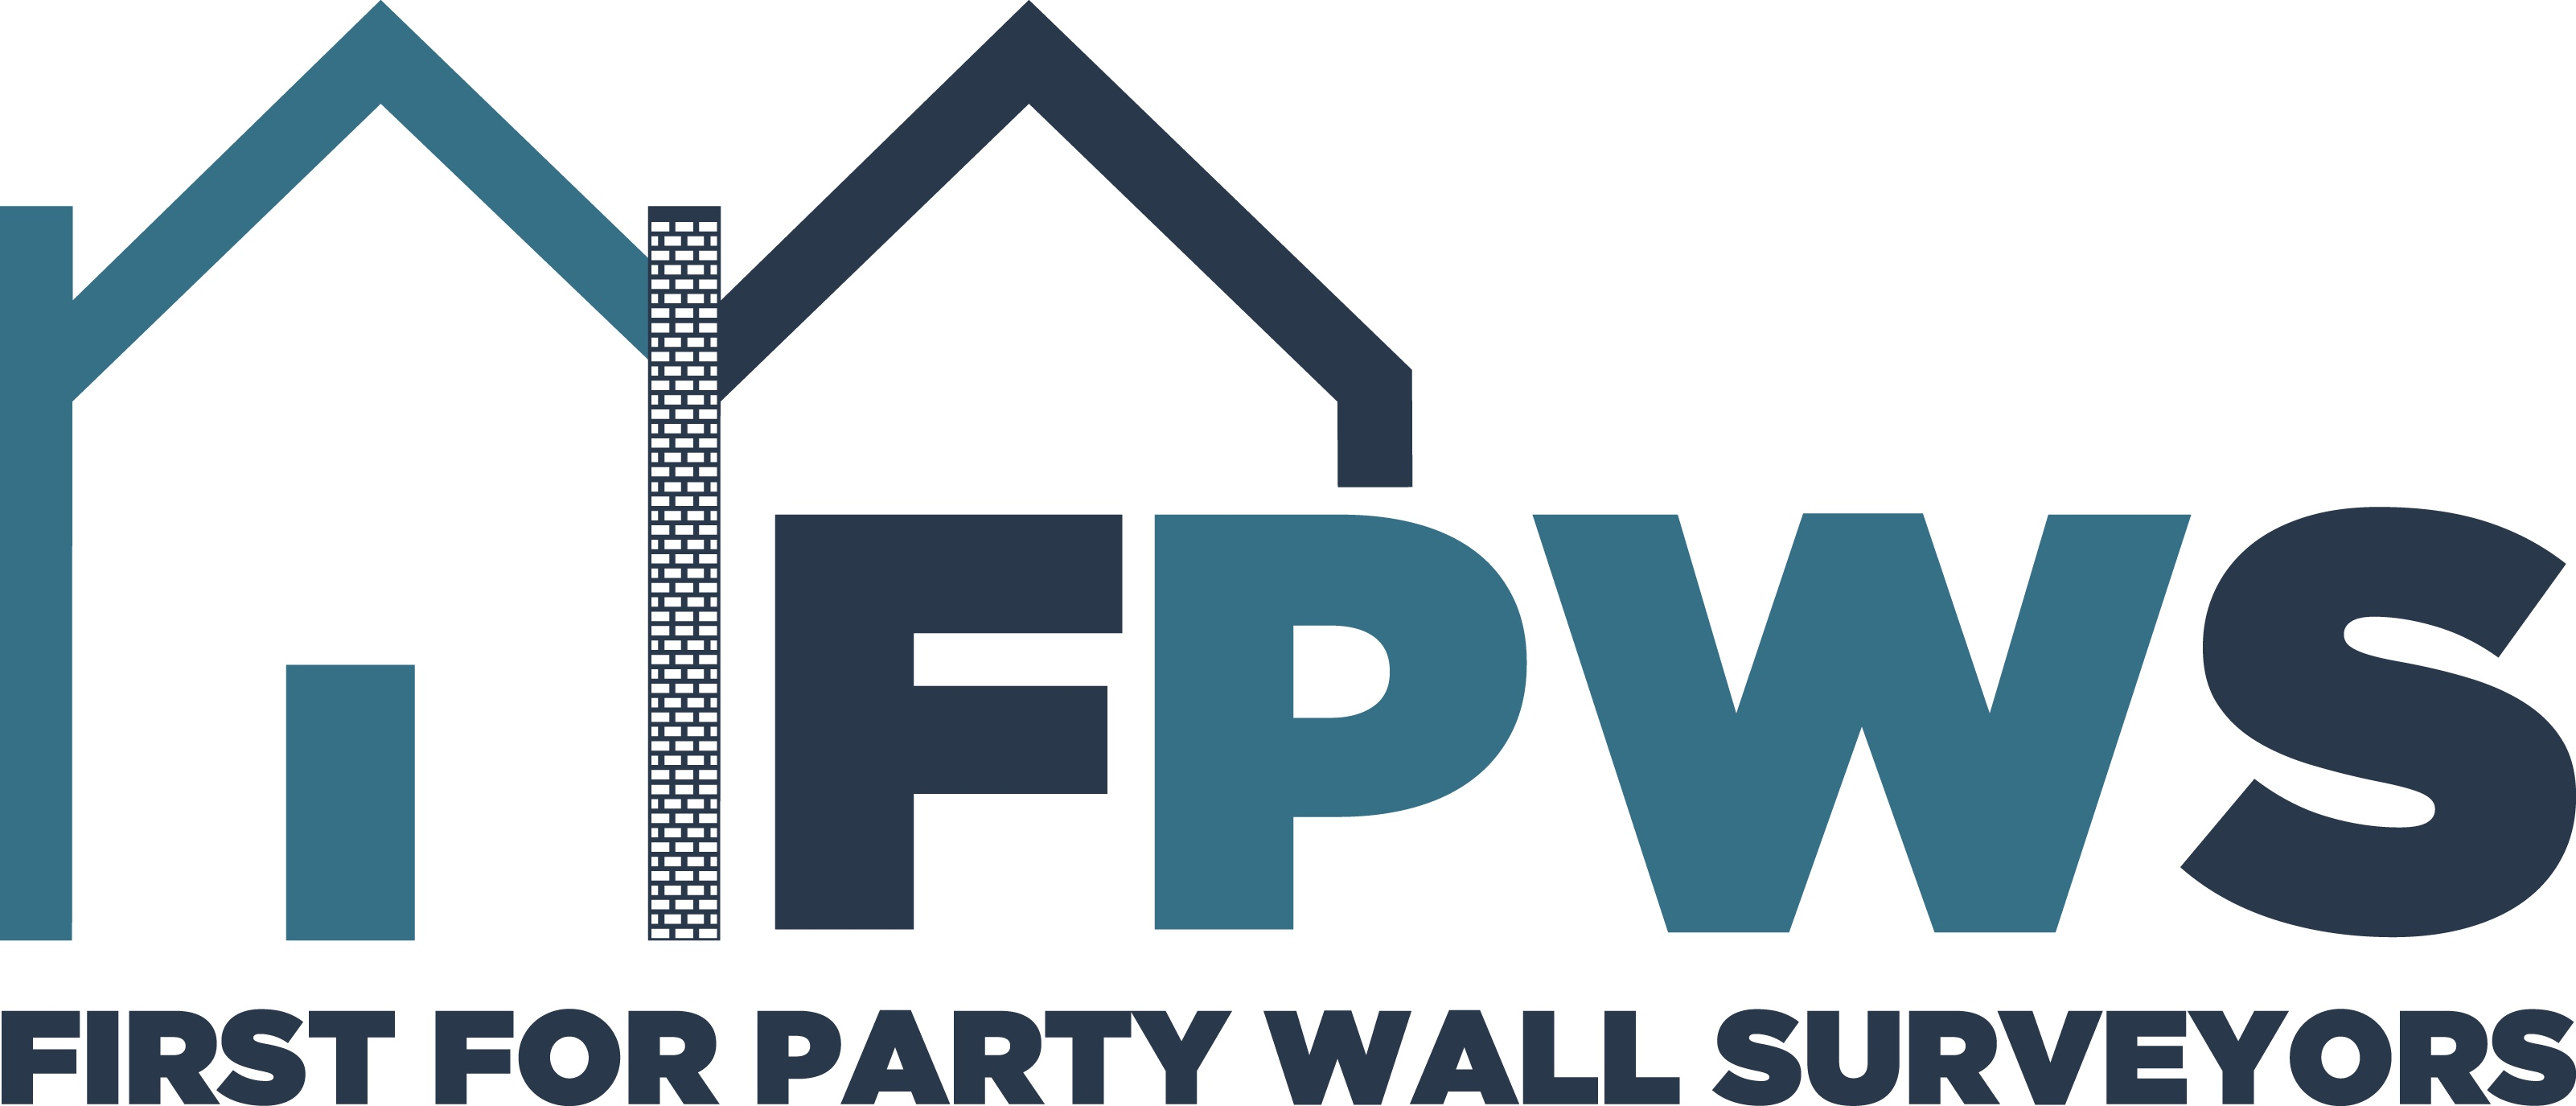 First for Party Wall Surveyors (North London) FPWS